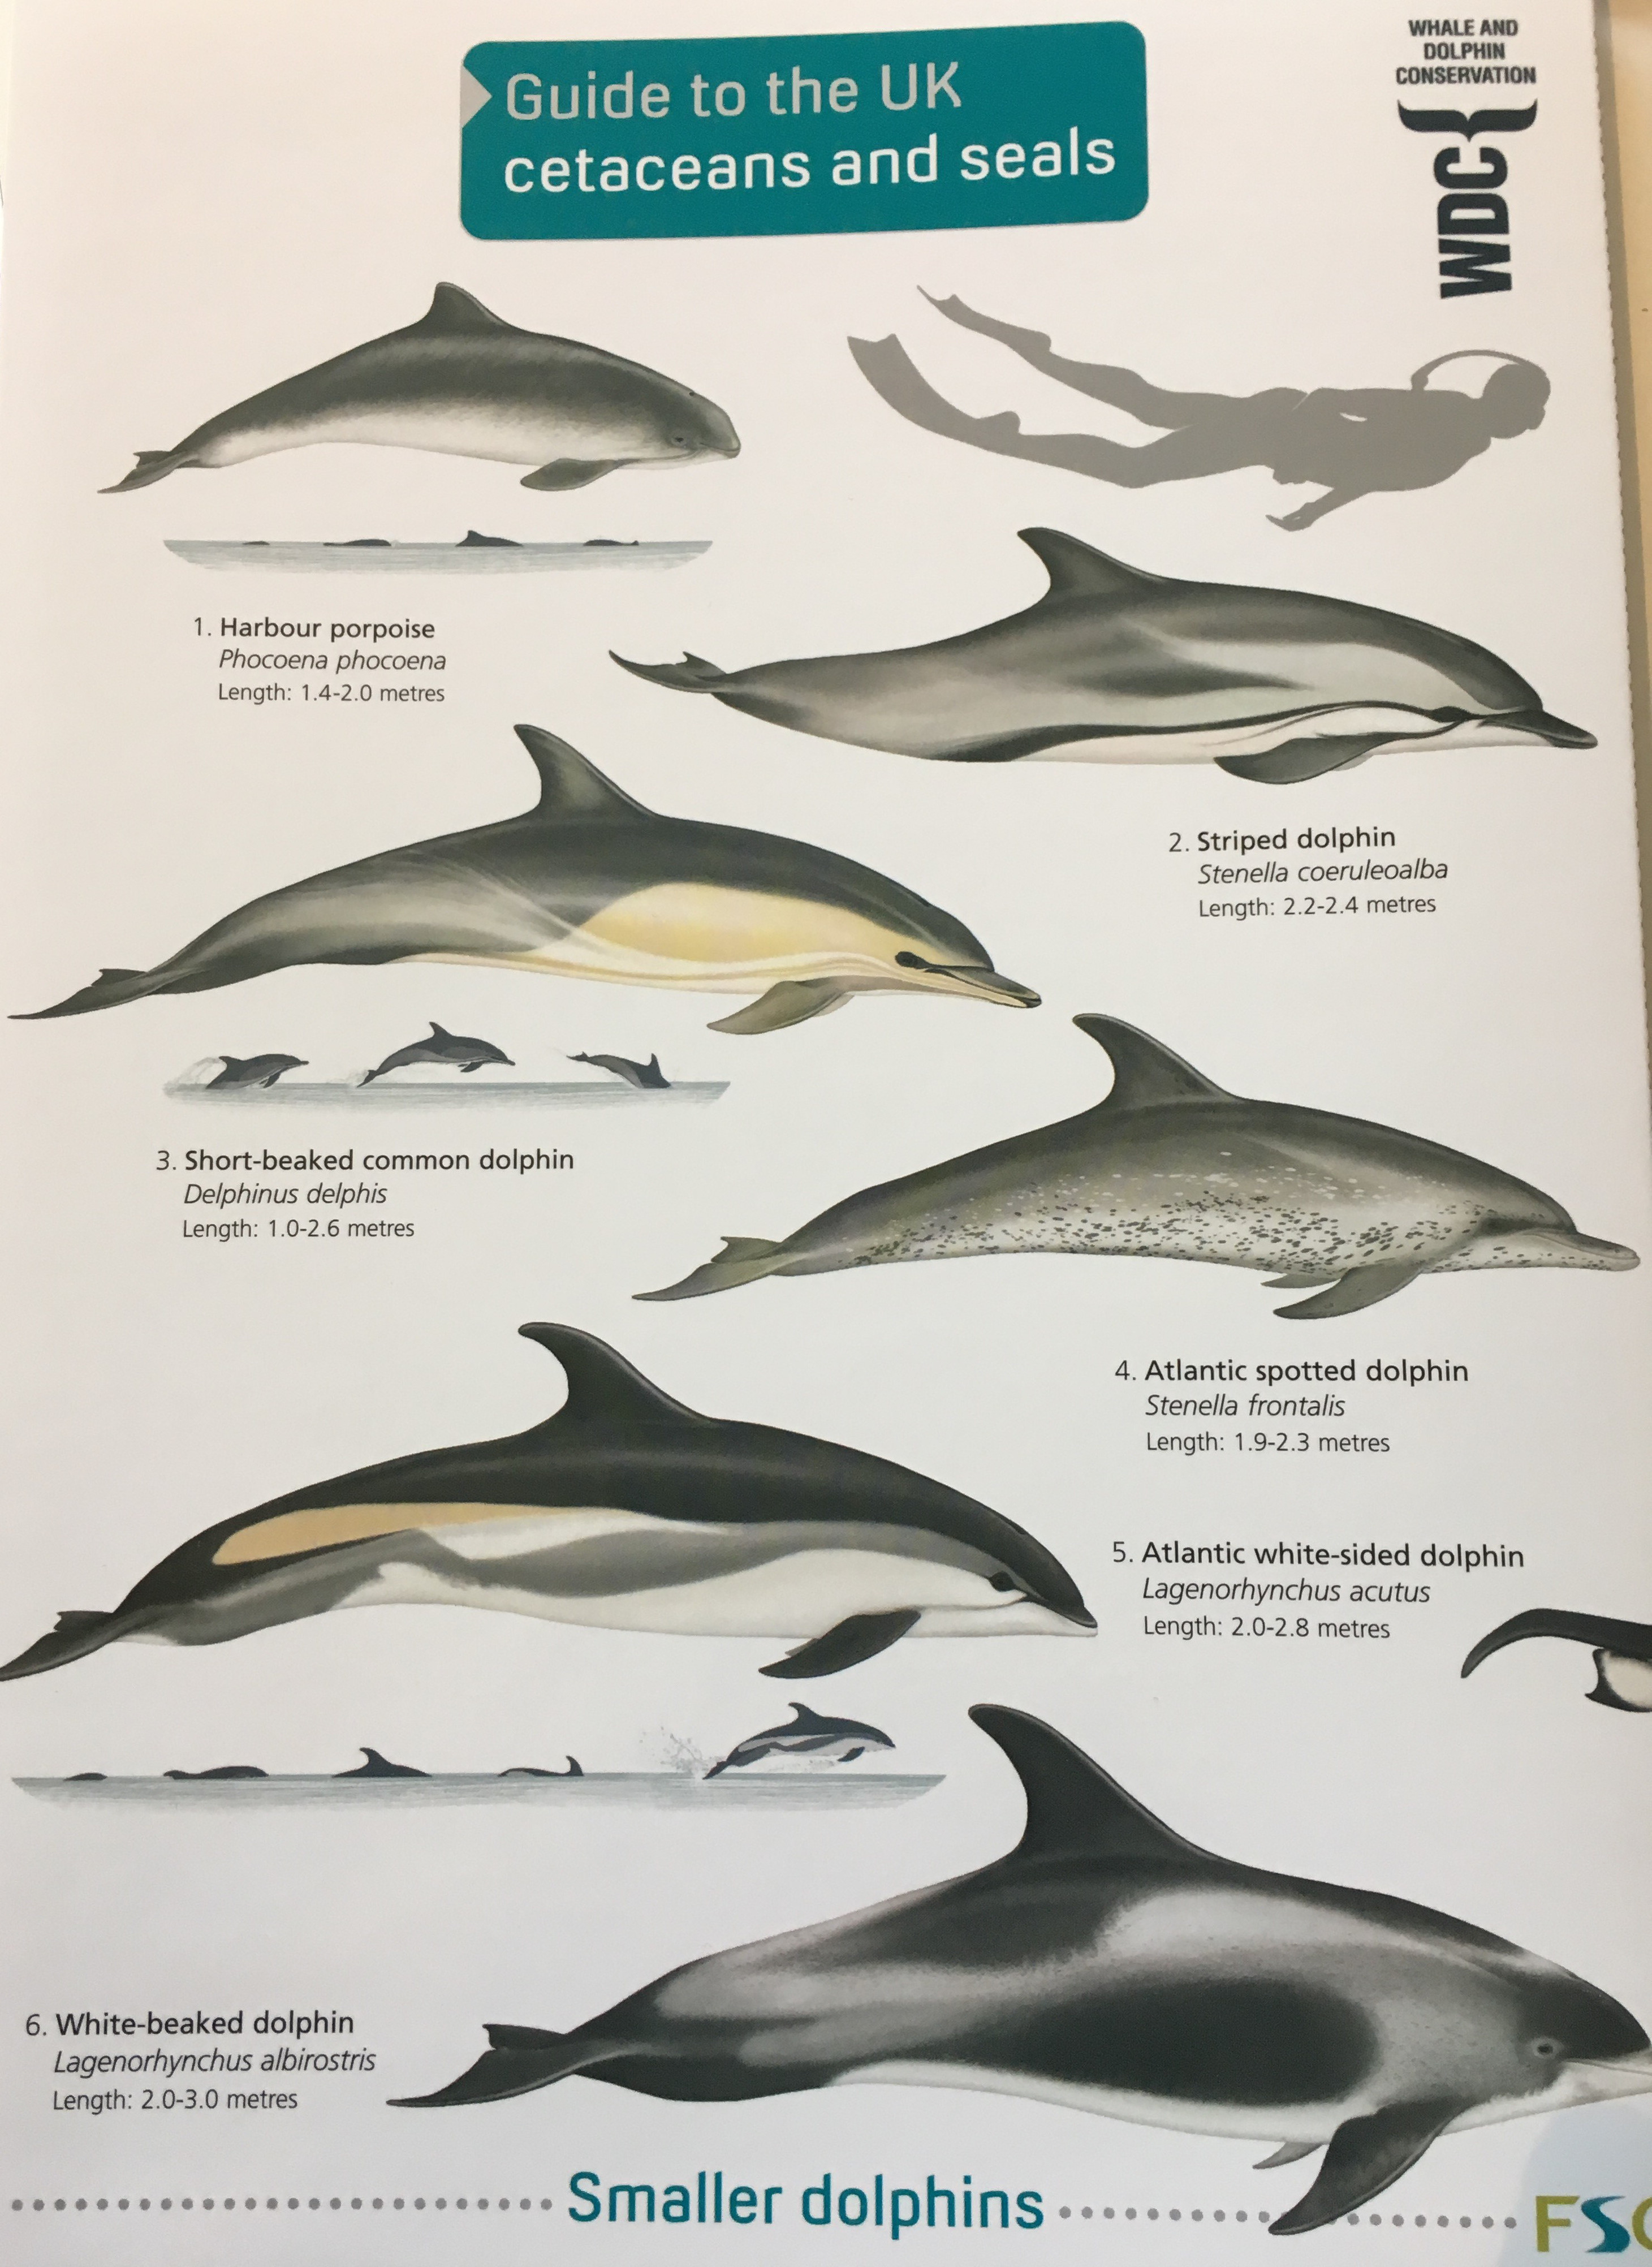 ID Guide - Cetaceans and Seals